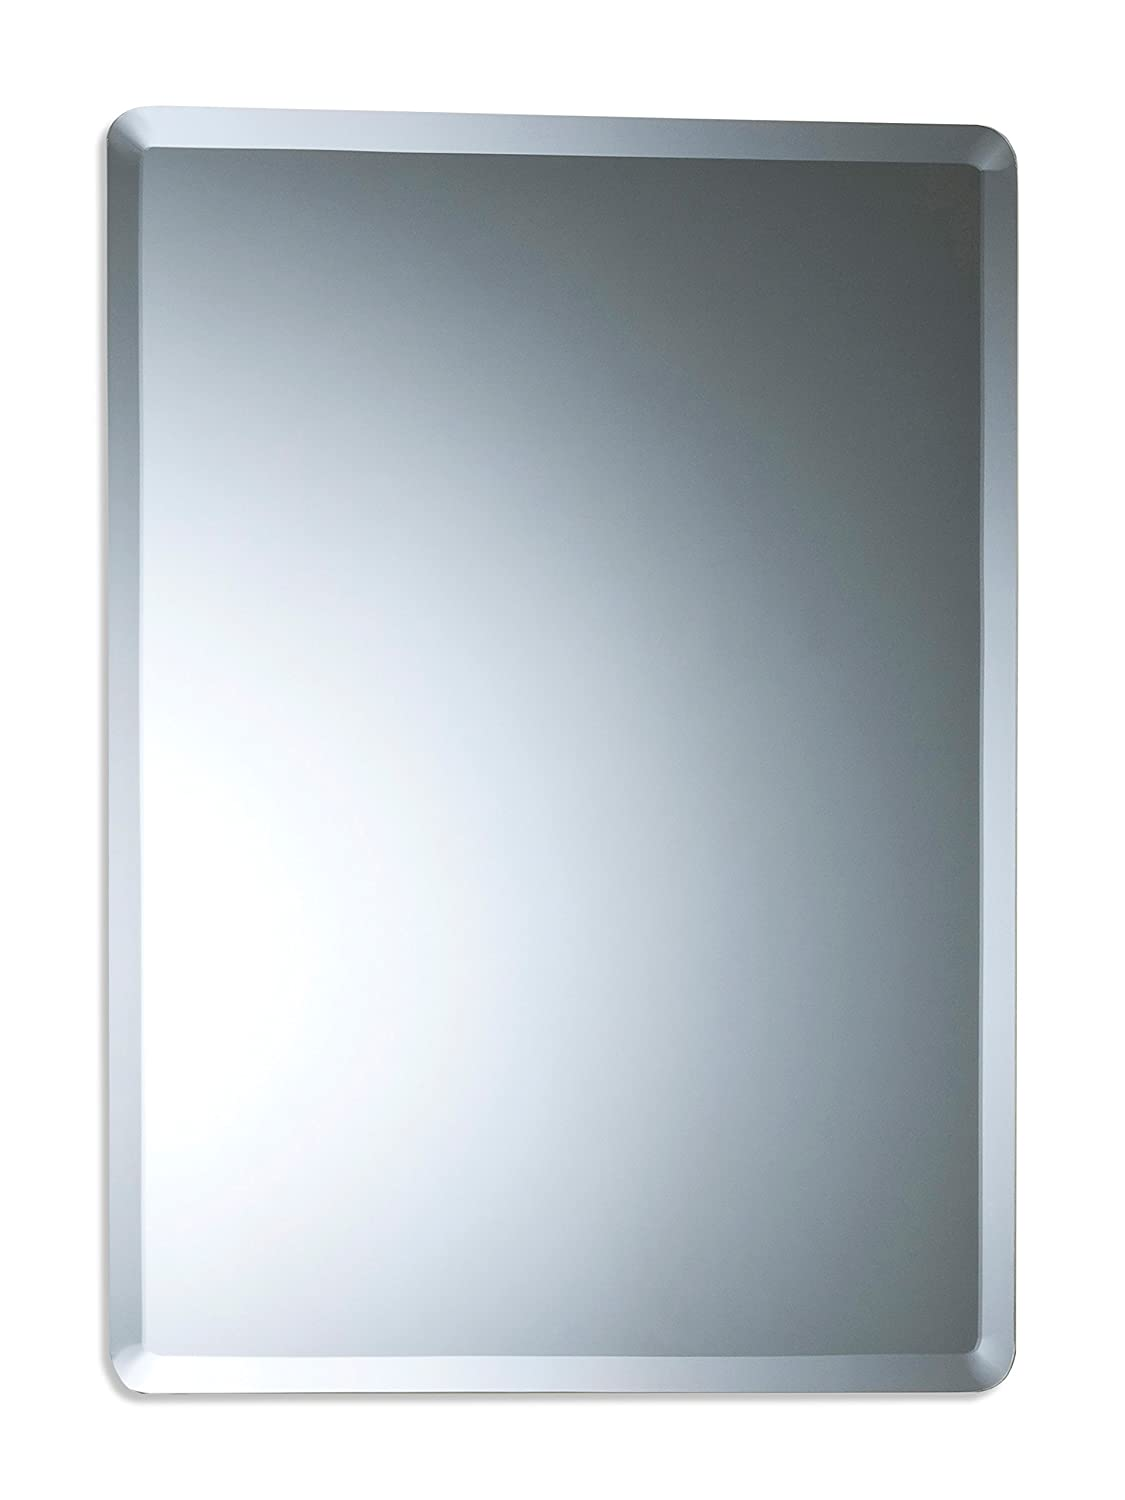 Bathroom Wall Mirror Simple Elegant Rectangular 60cm X 45cm Plain Design with Bevel - Wall Mounted Neue Design